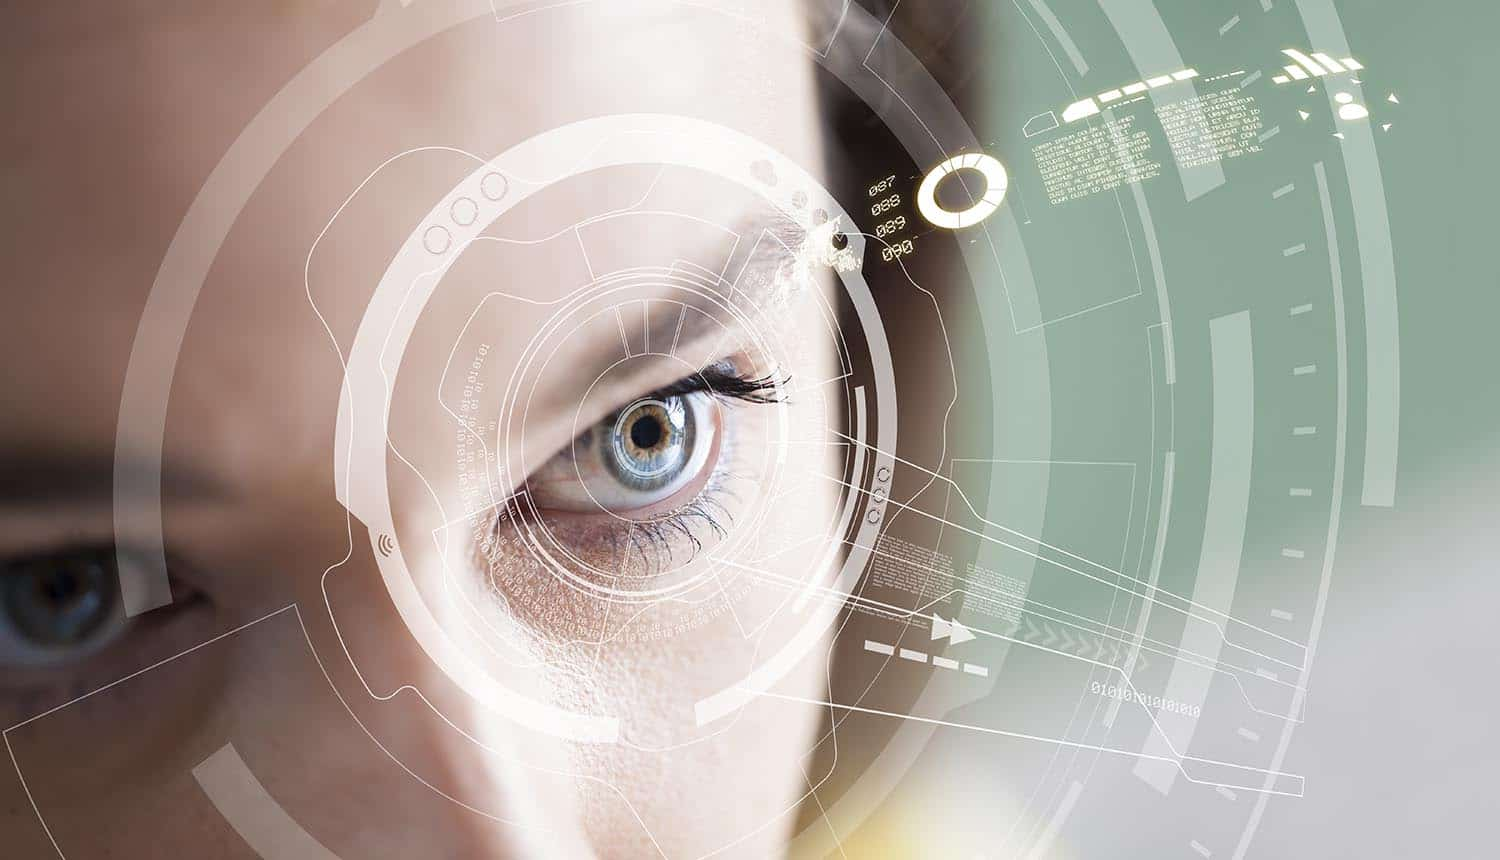 Woamn with Iris recognition technology showing KYC and identity